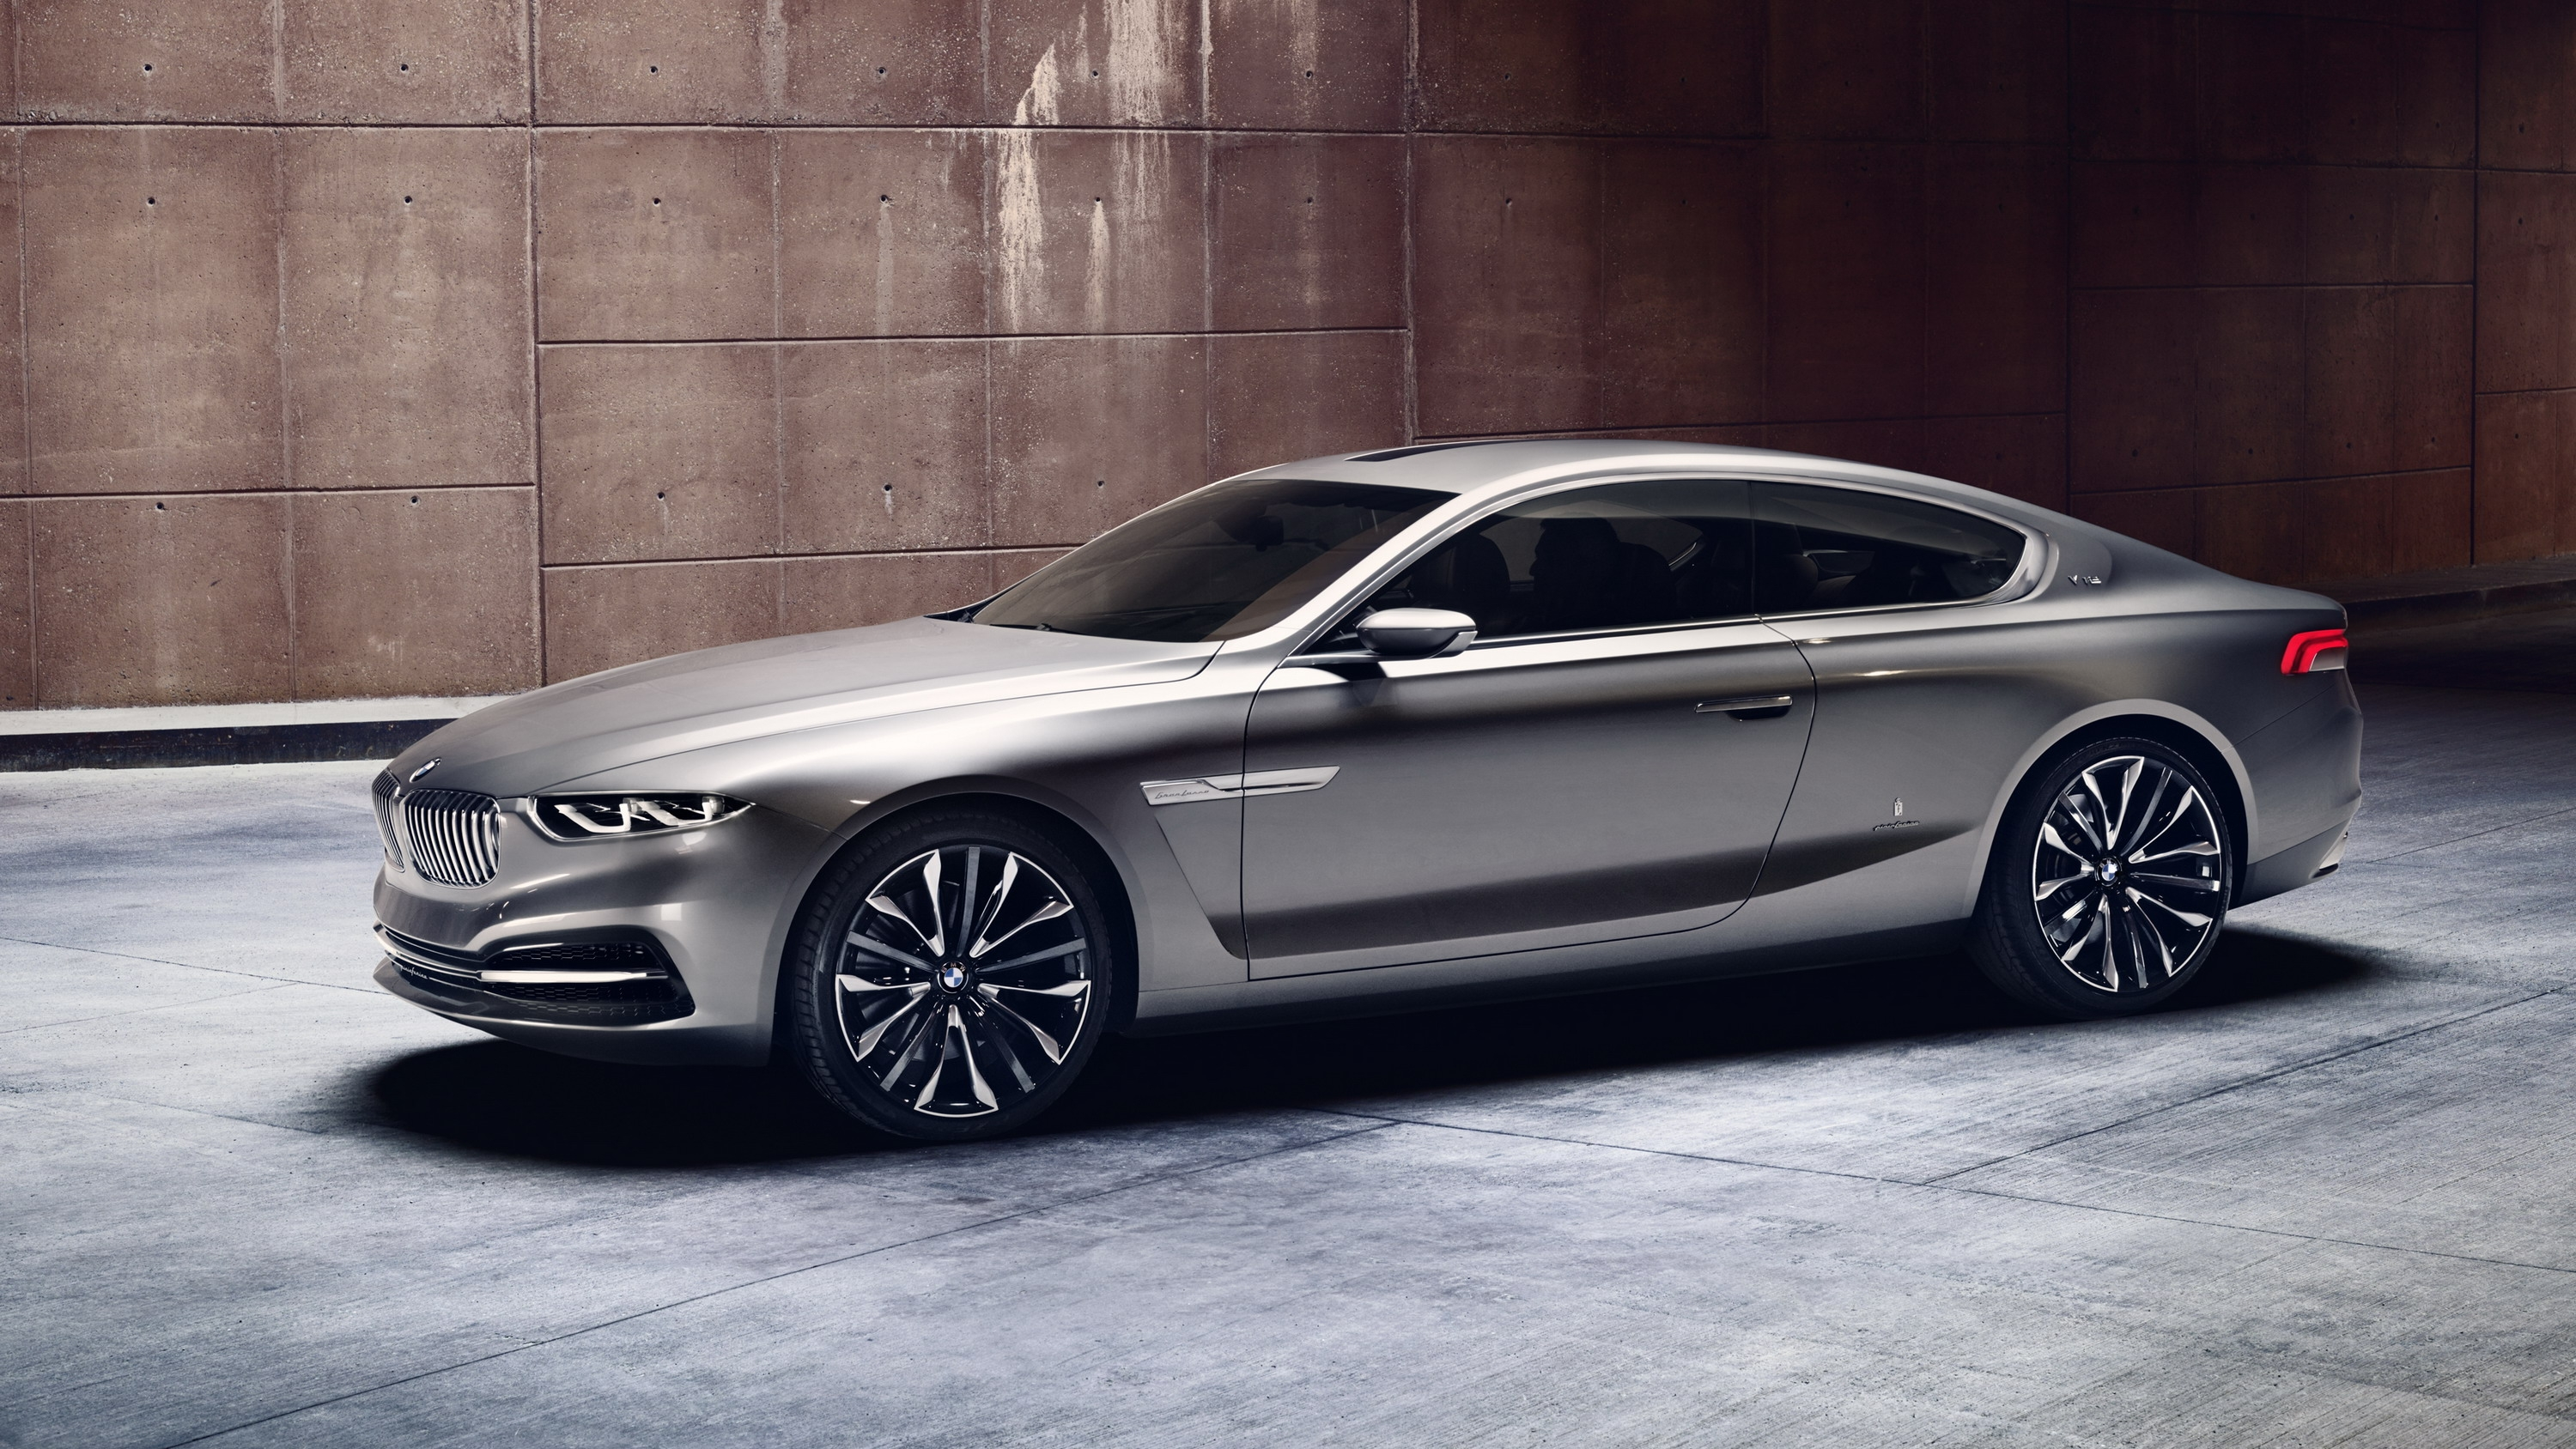 BMW To Launch 7 Series Coupe In 2019 Report